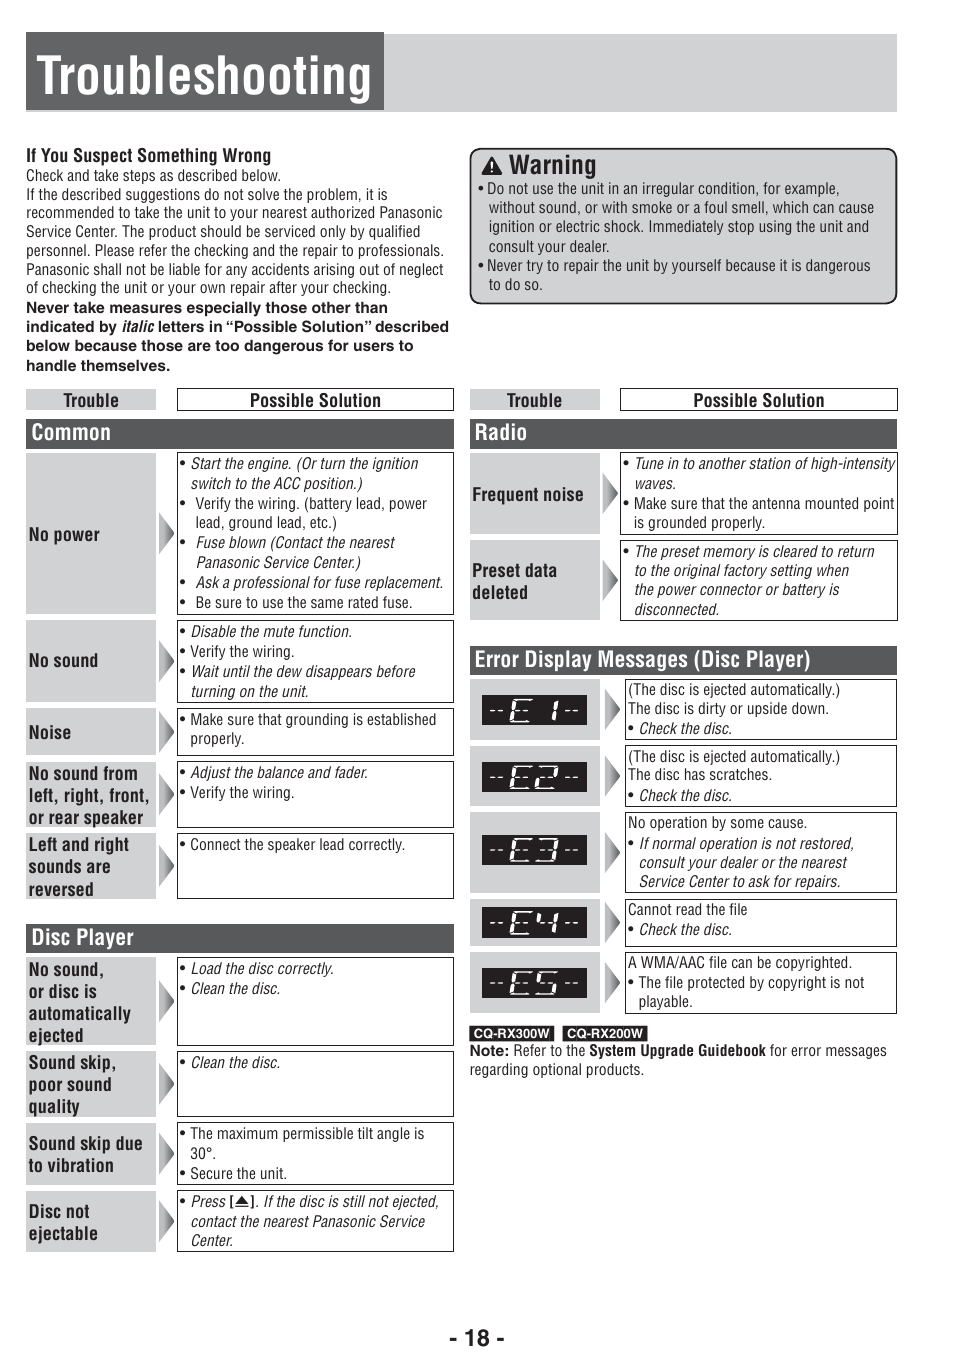 Troubleshooting Warning Common Panasonic Cq Rx102w En User Aac Unit Wiring Manual Page 18 24